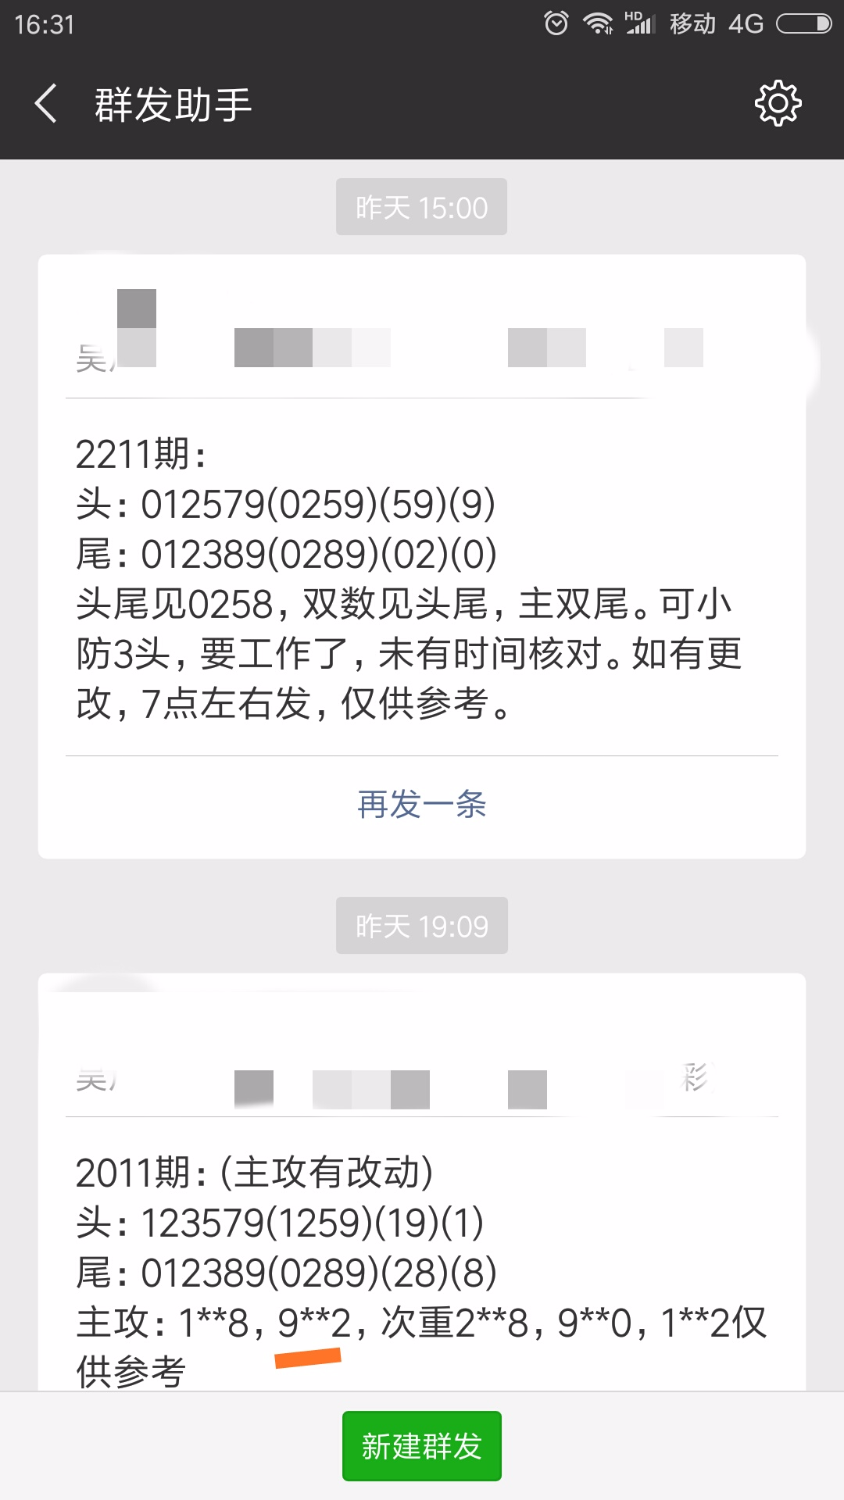 Screenshot_2018-10-10-16-31-43-140_com.tencent.mm.png